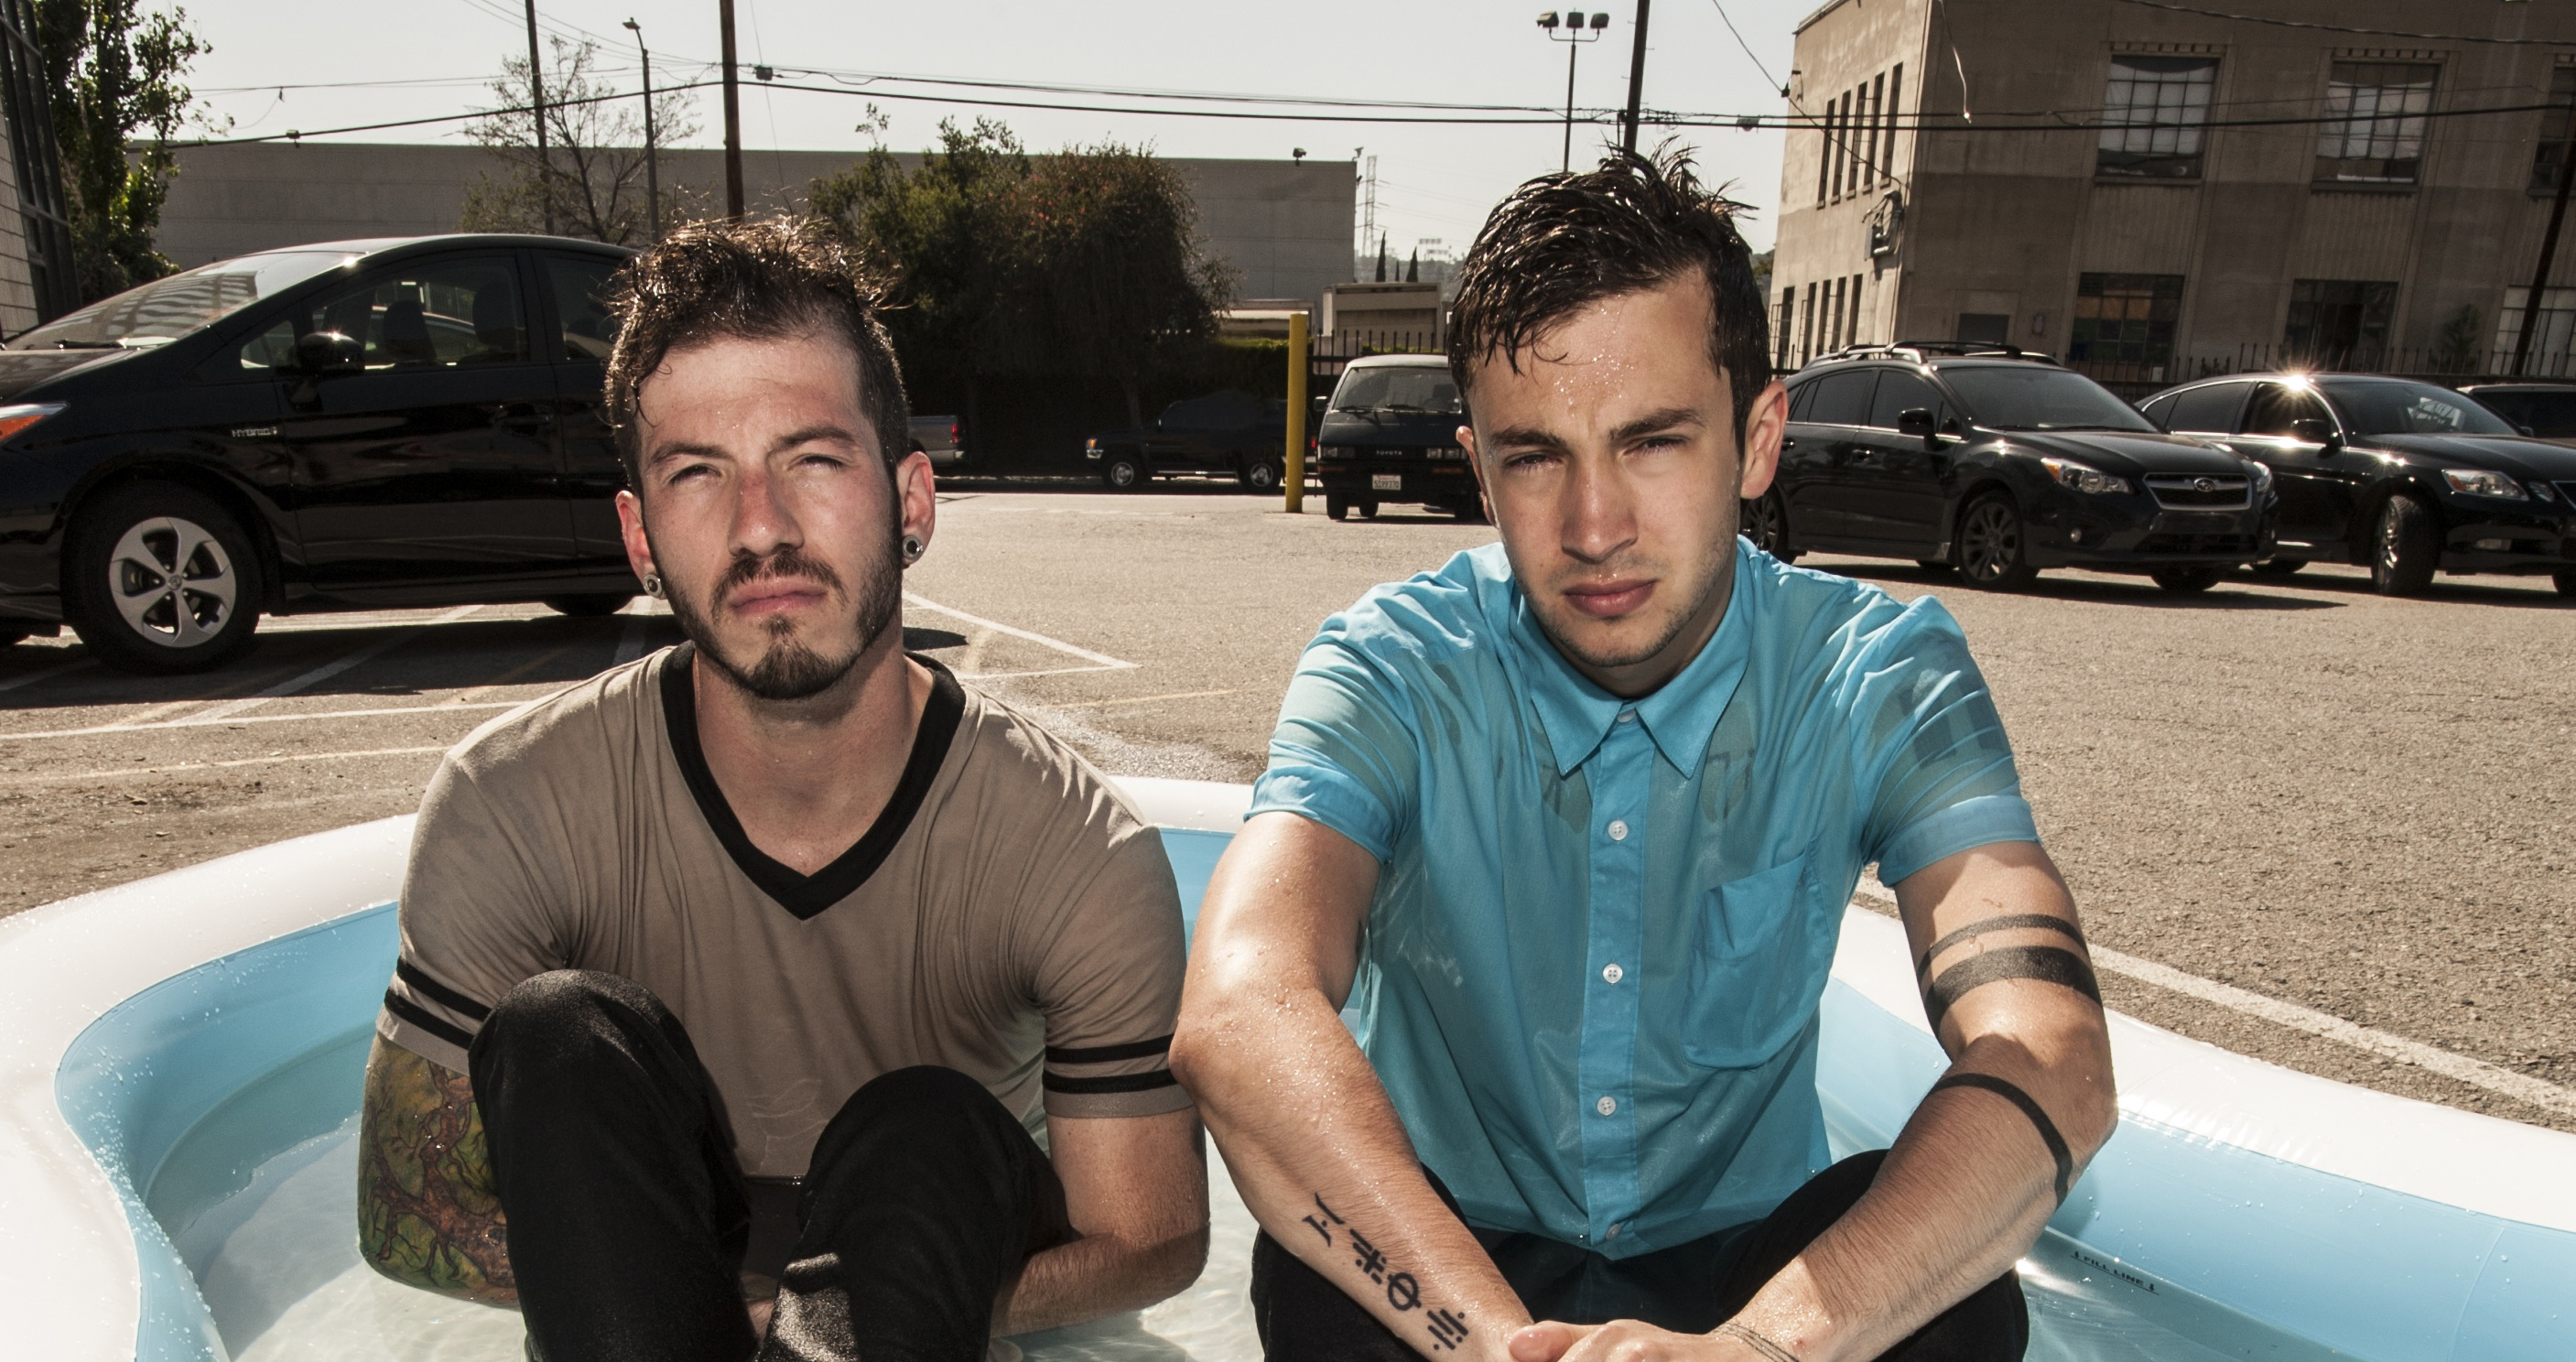 Volleyball Quotes Wallpapers Review Twenty One Pilots In Finest Form At Hometown Show